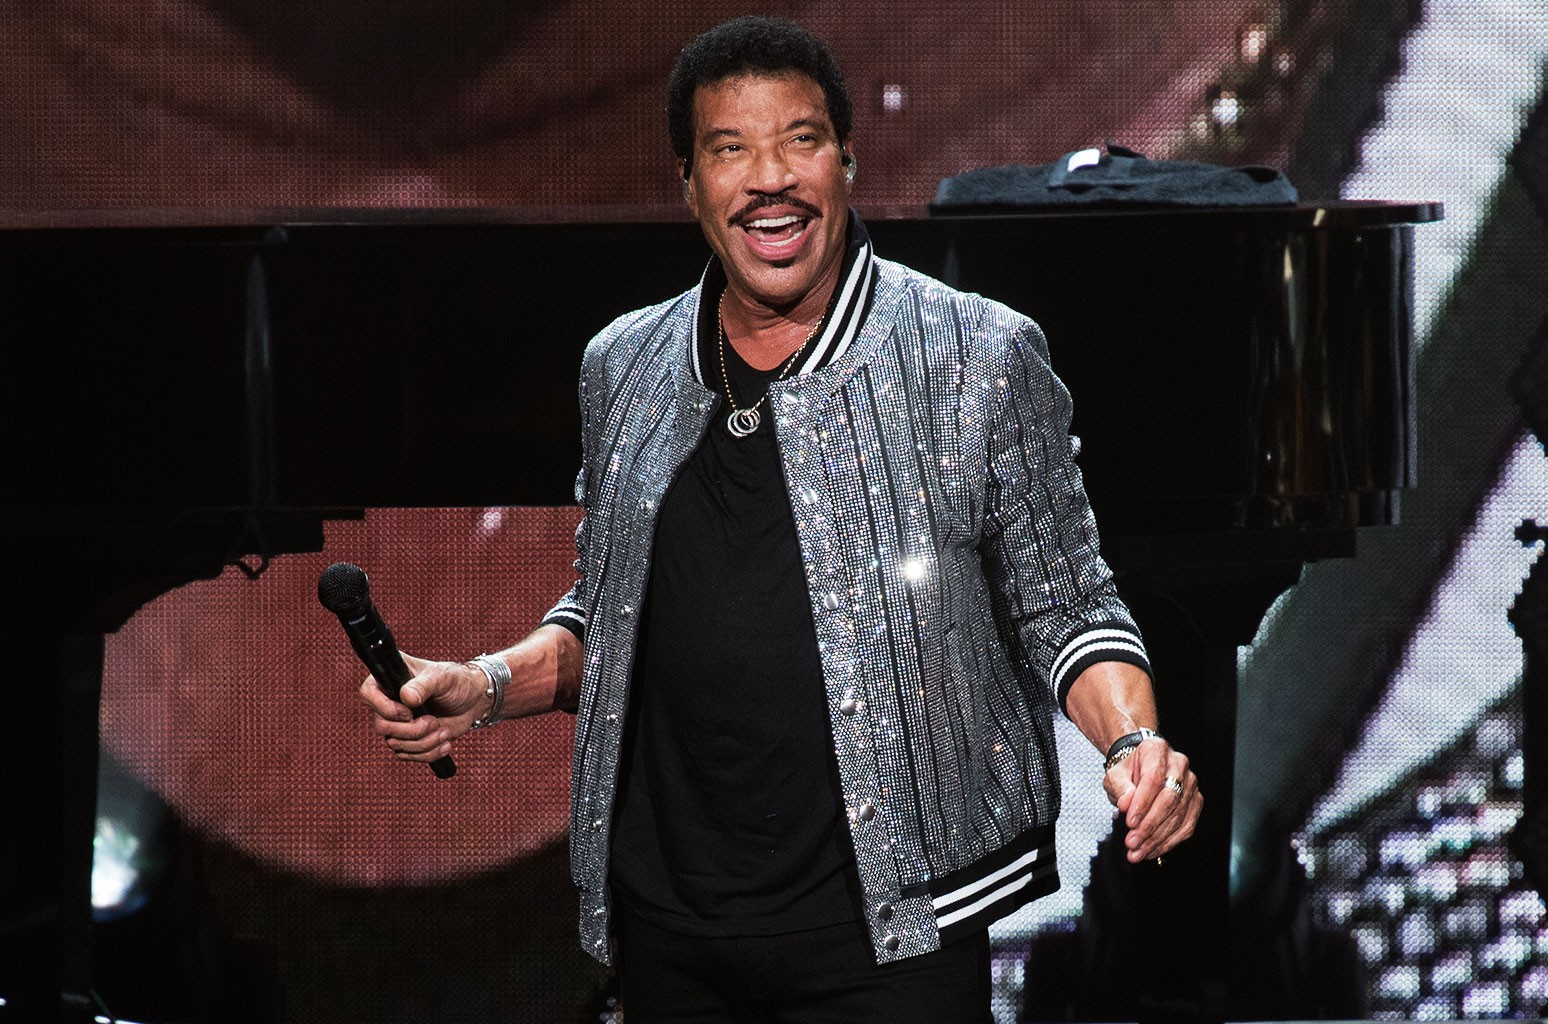 lionel richie at the hollywood bowl 45 years on he played the hits all night long billboard lionel richie at the hollywood bowl 45